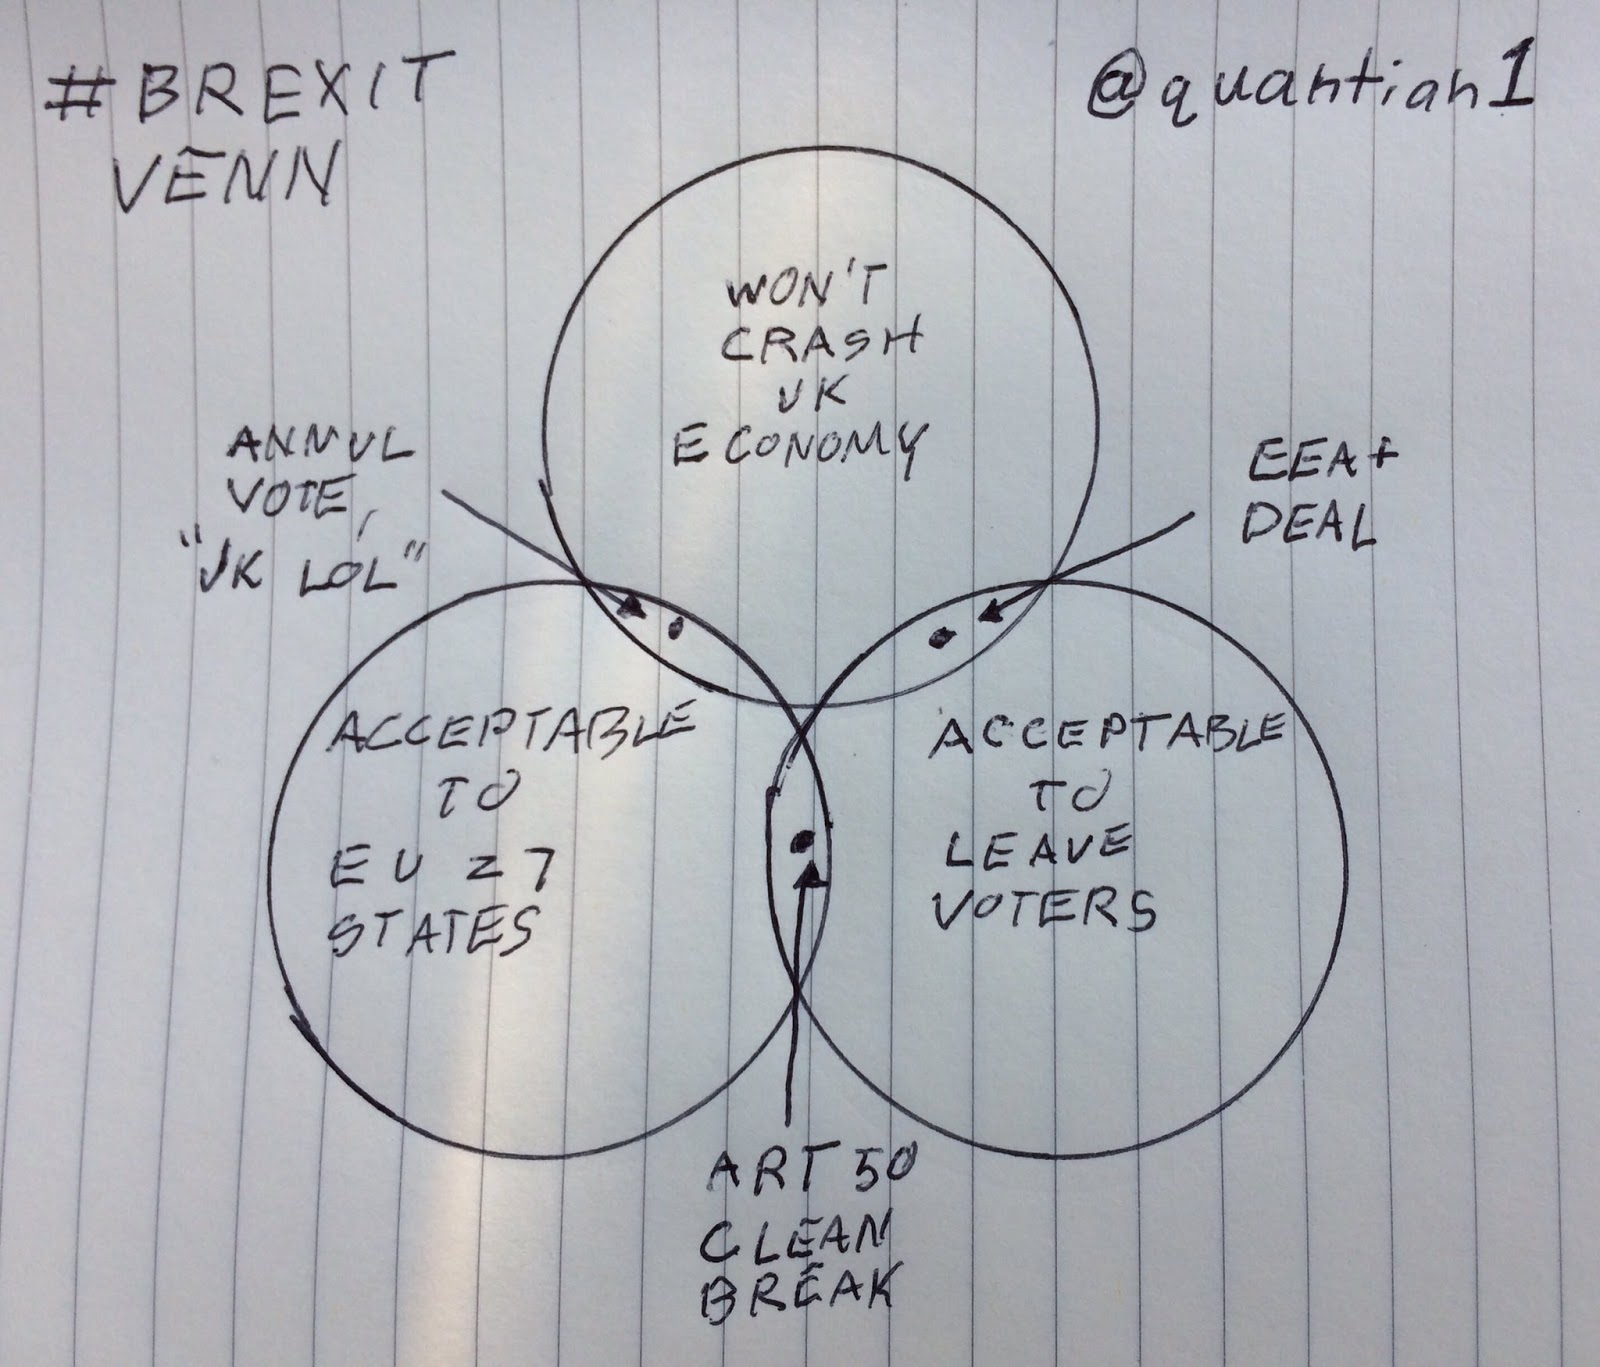 Essayist-Lawyer: A Few (More) Notes on the Brexit